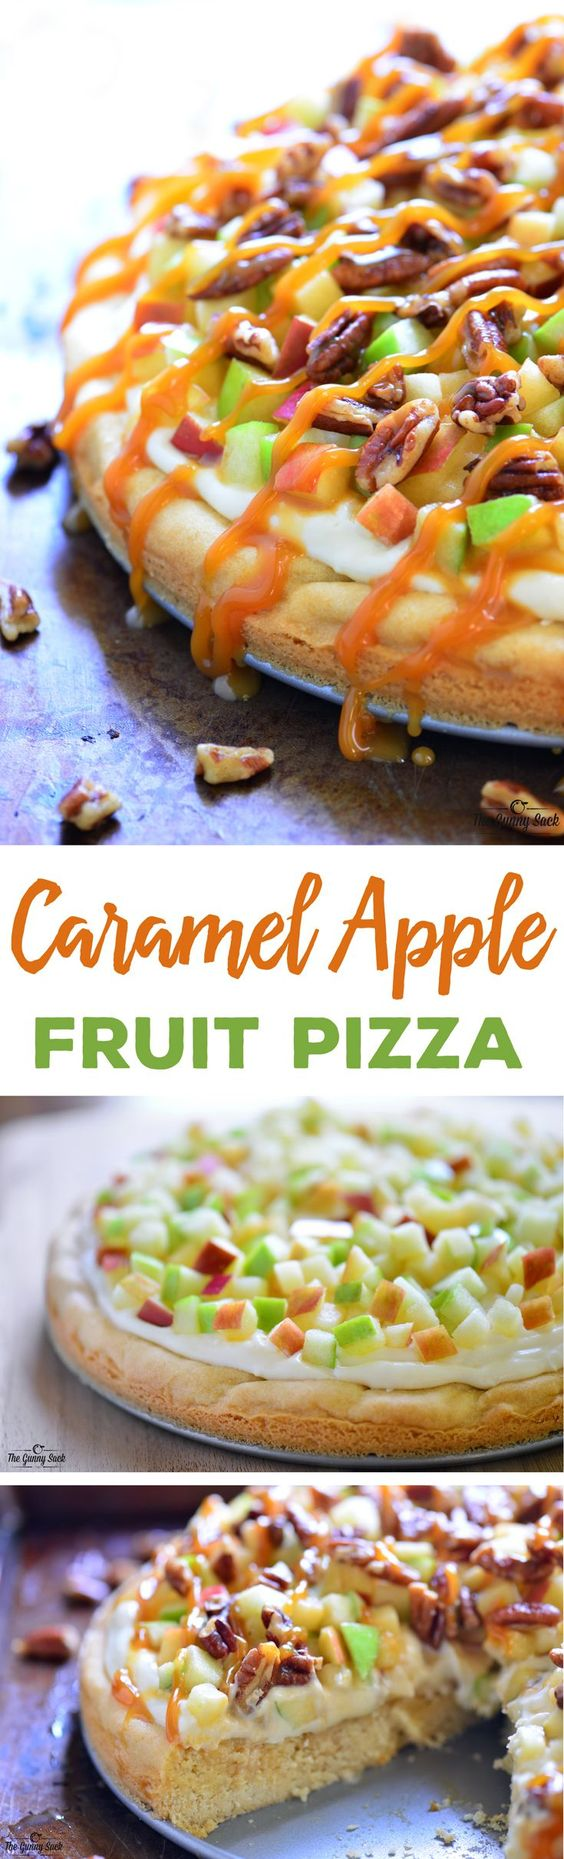 This Caramel Apple Fruit Pizza is a delicious fall dessert with a sugar cookie crust cream cheese frosting toasted pecans and a drizzle of caramel.